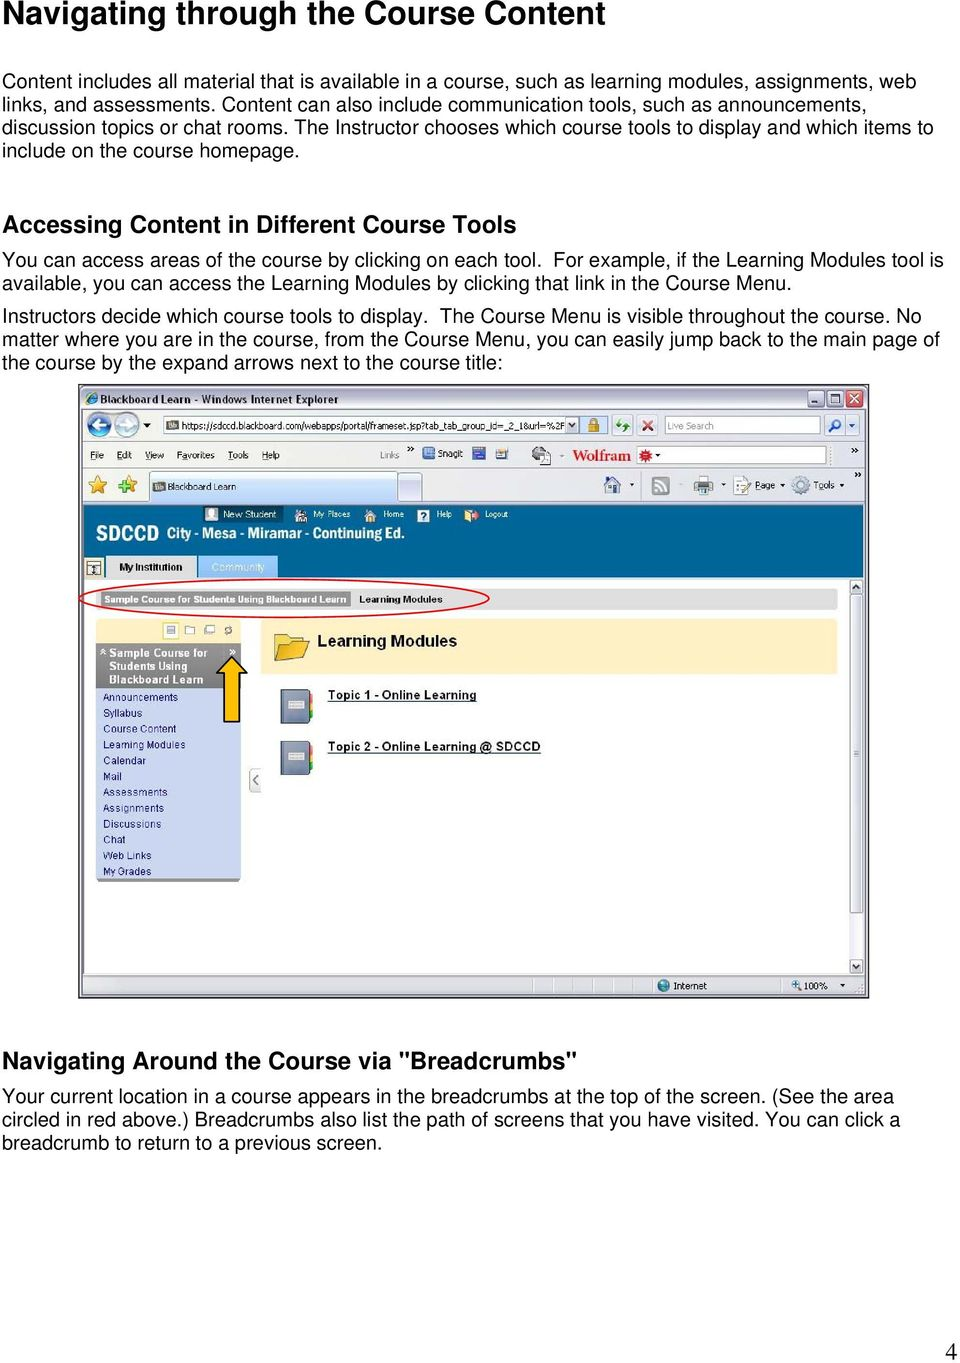 The Instructor chooses which course tools to display and which items to include on the course homepage.